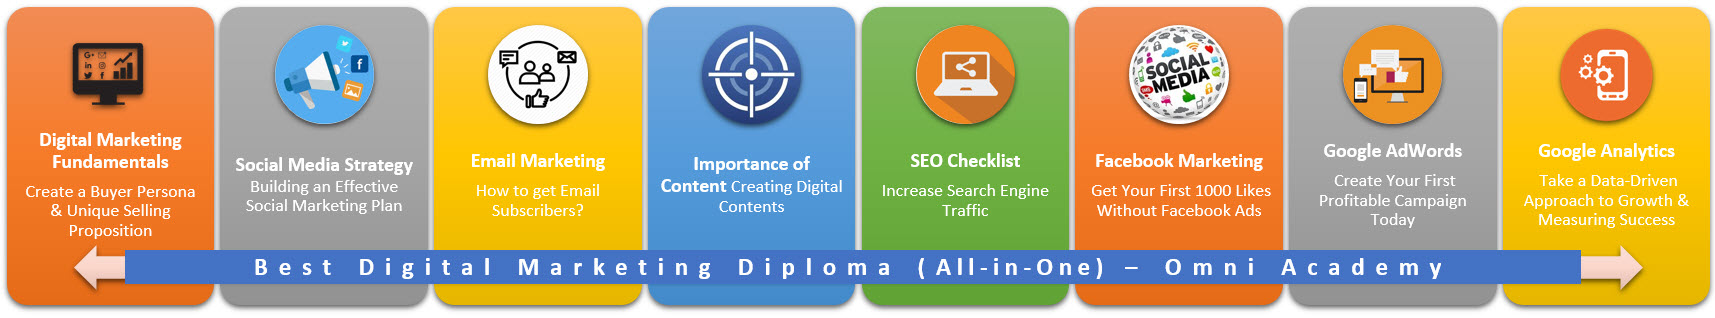 digital-marketing-diploma-all-course-map-omni-academy